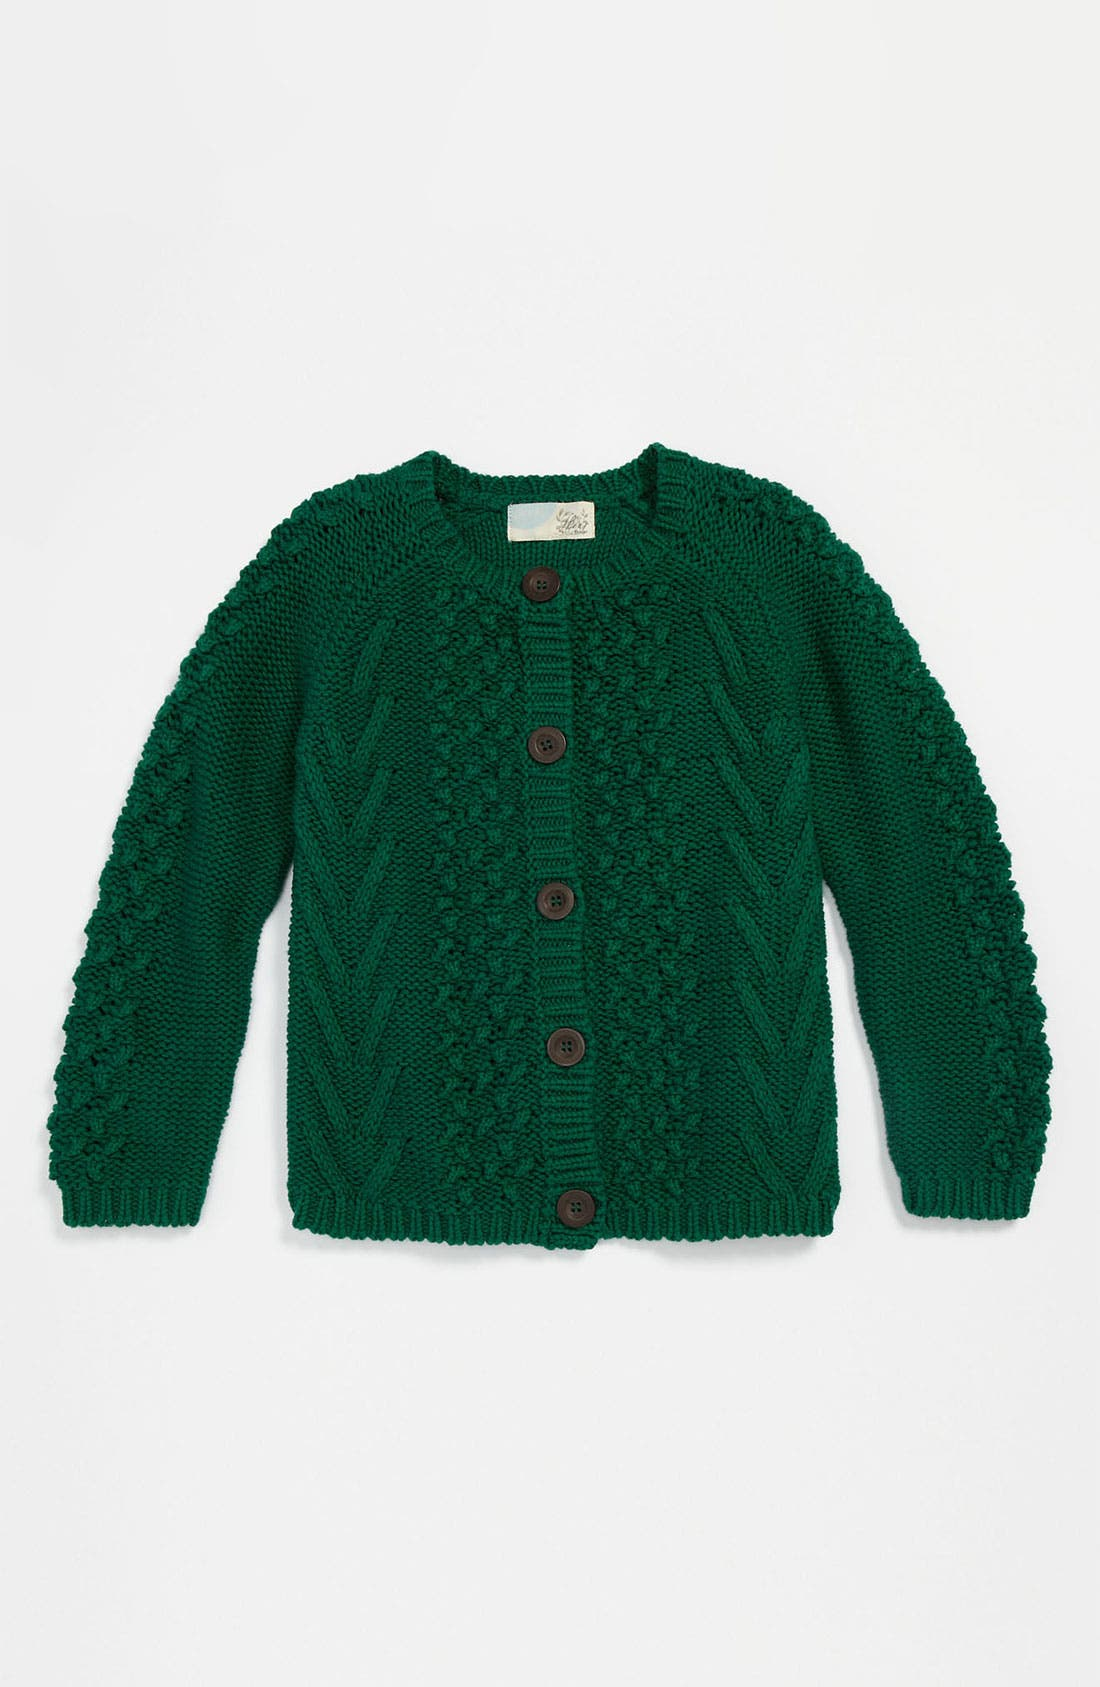 Alternate Image 1 Selected - Peek 'Clara' Cardigan (Toddler, Little Girls & Big Girls)